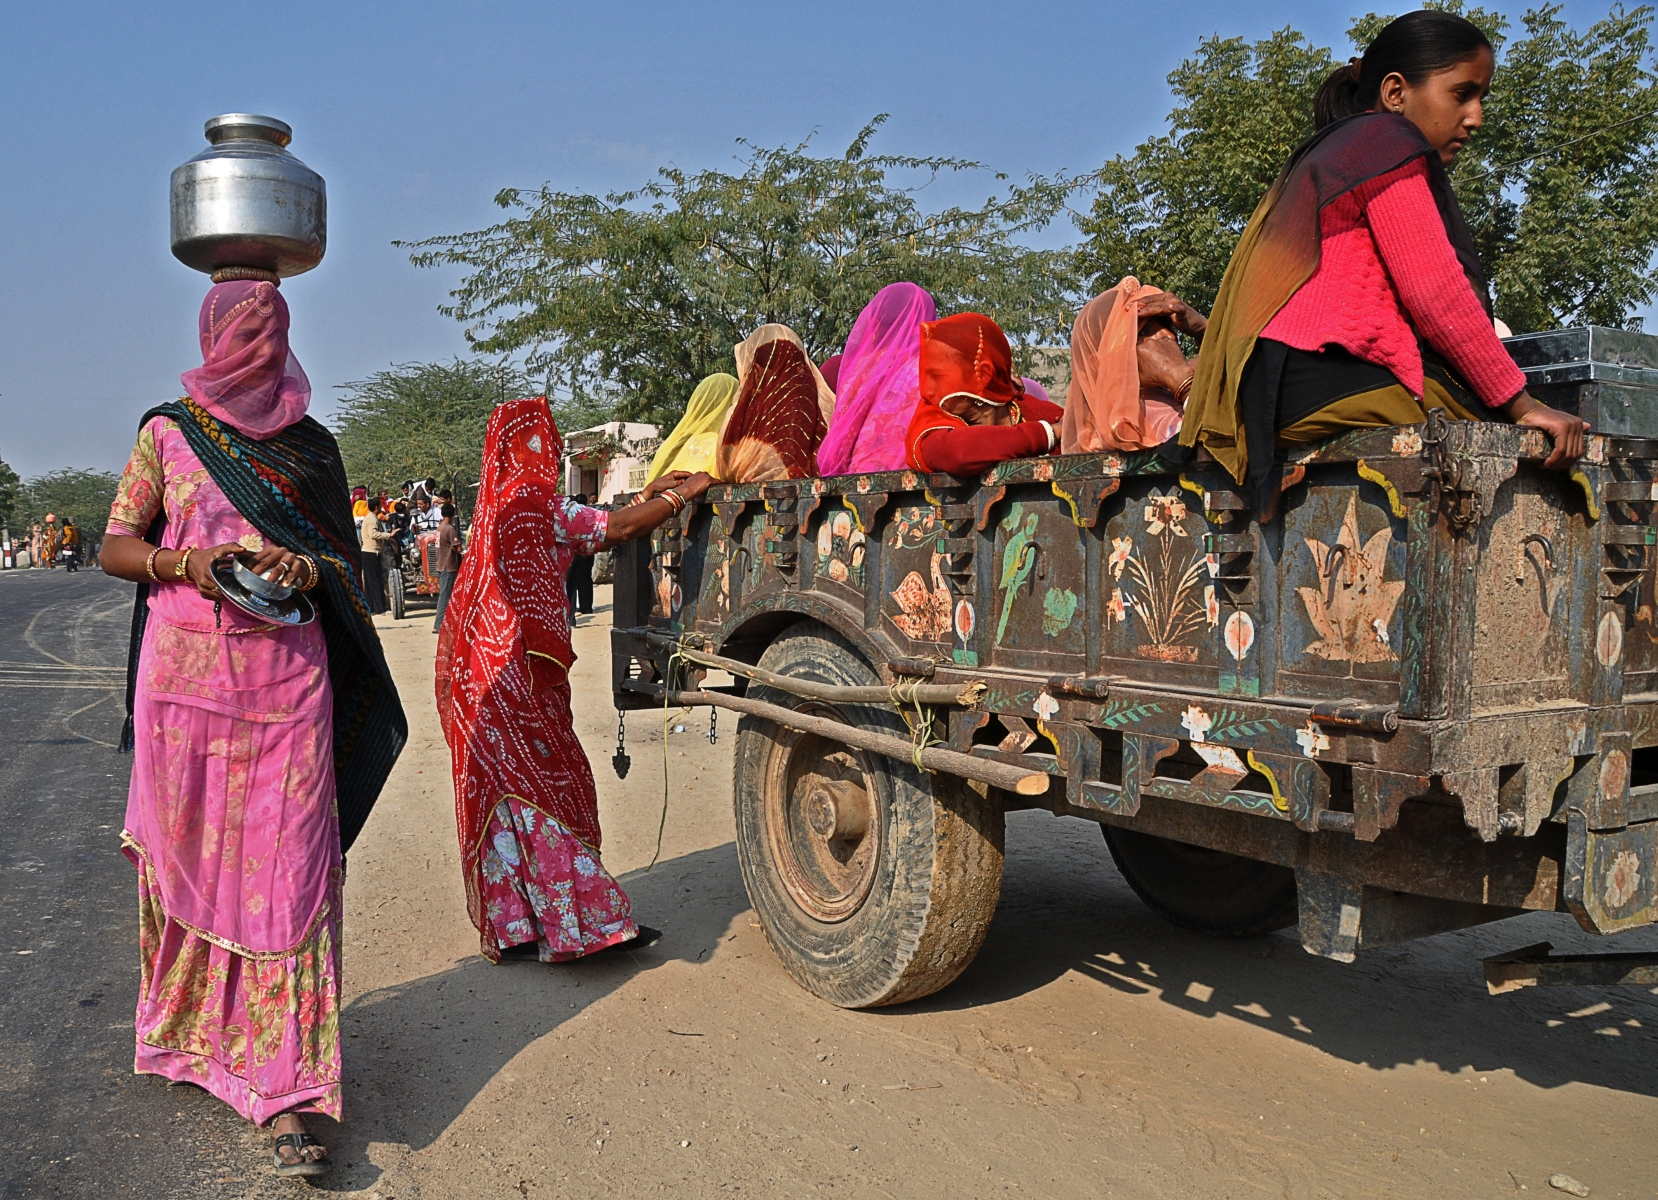 'Rural Indian Women Go to a Wedding' (TA 1 Place) by Bill Sumits - MR